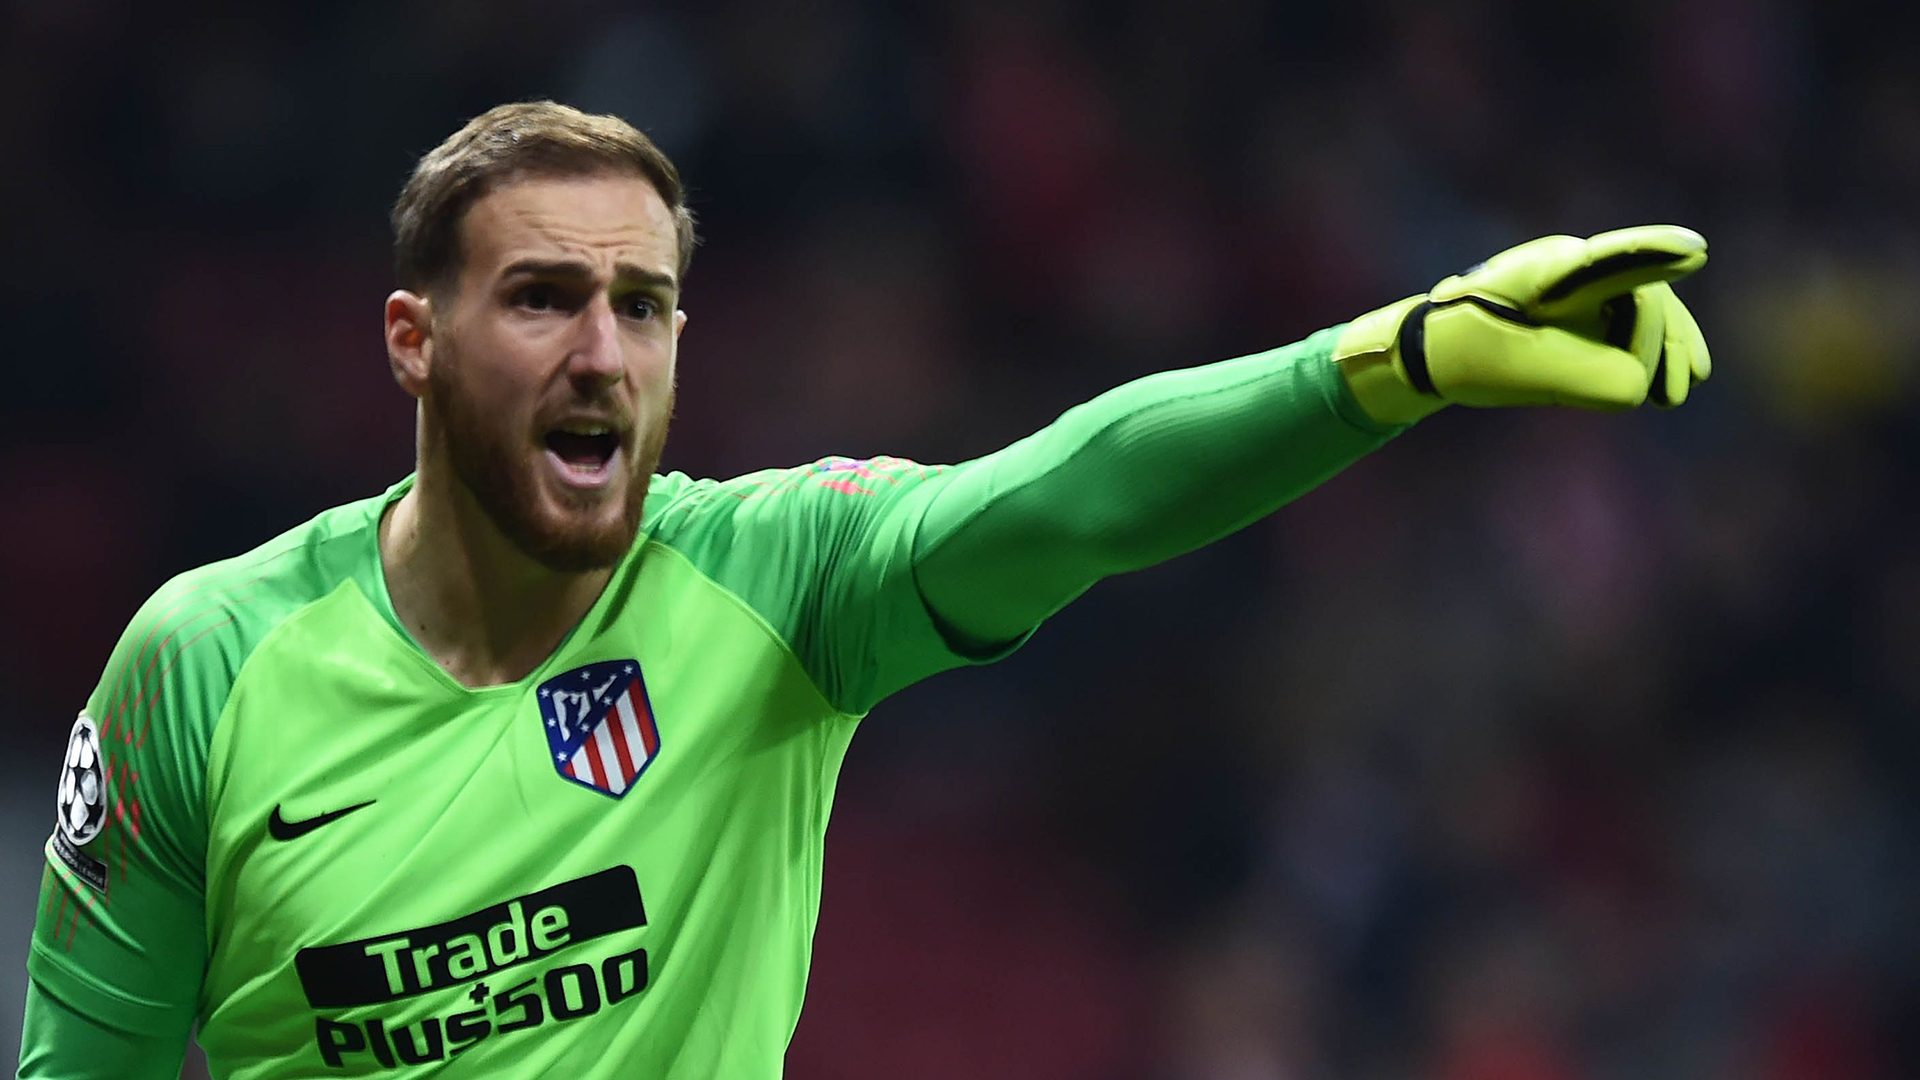 afa0a9eccd6 Transfer news and rumours LIVE: Oblak eyes Man Utd move after broken Atleti  promises | Goal.com